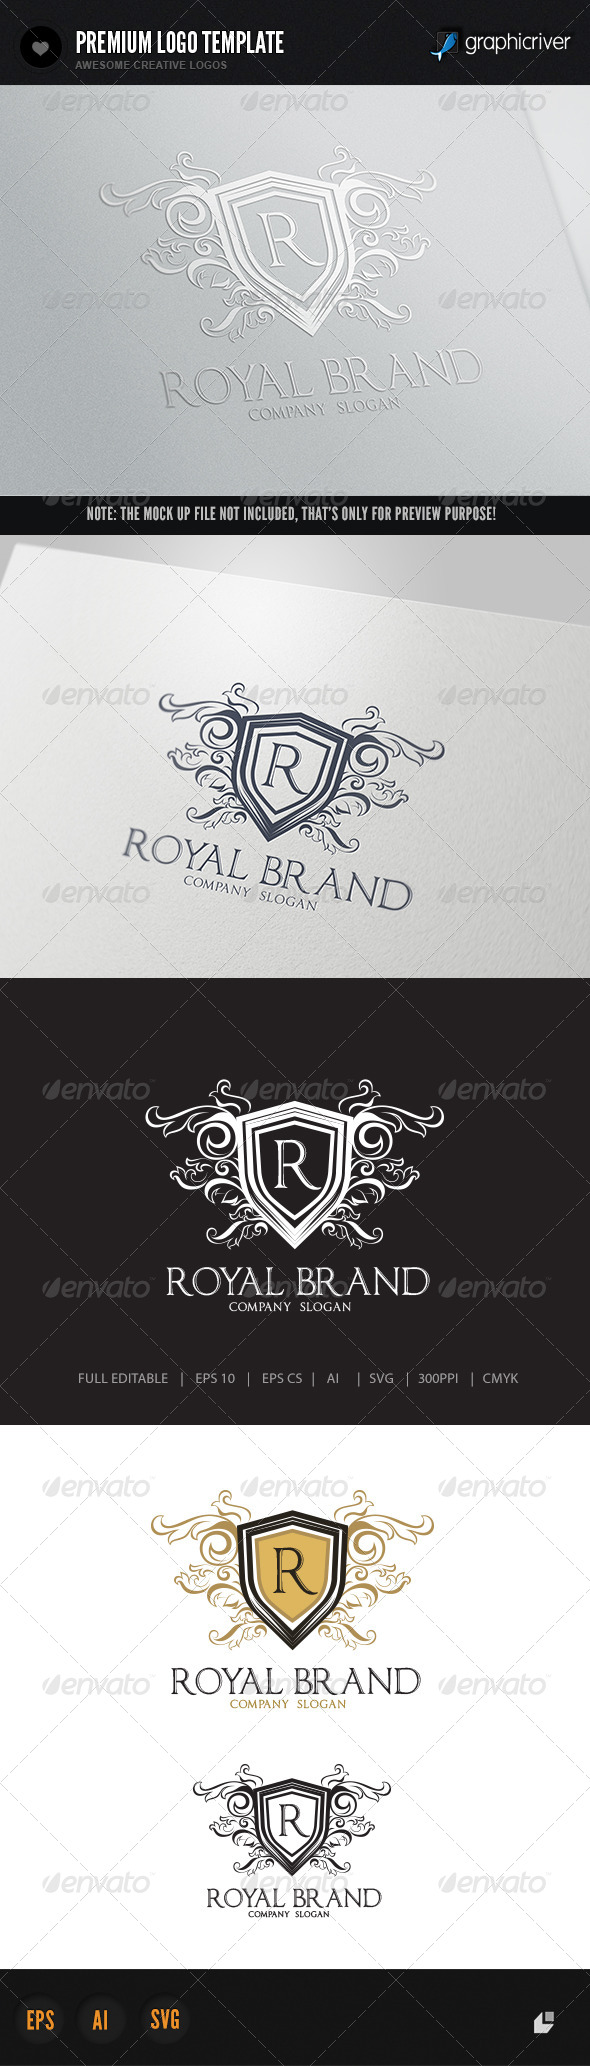 GraphicRiver Royal Brand 5854655